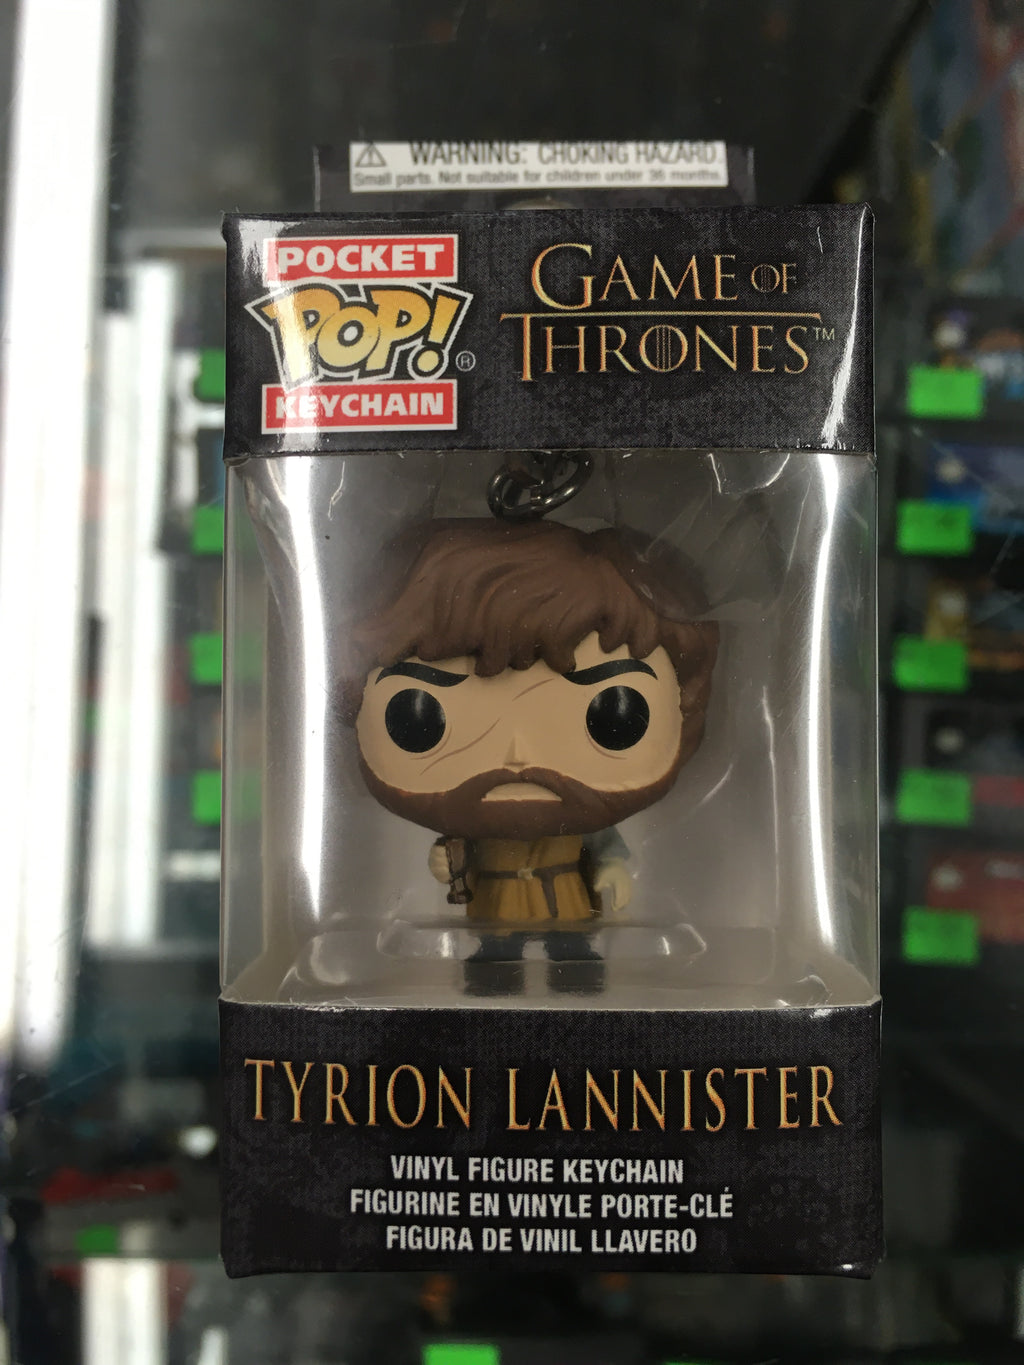 Pocket POP! Keychain- Game of Thrones Tyrion Lannister